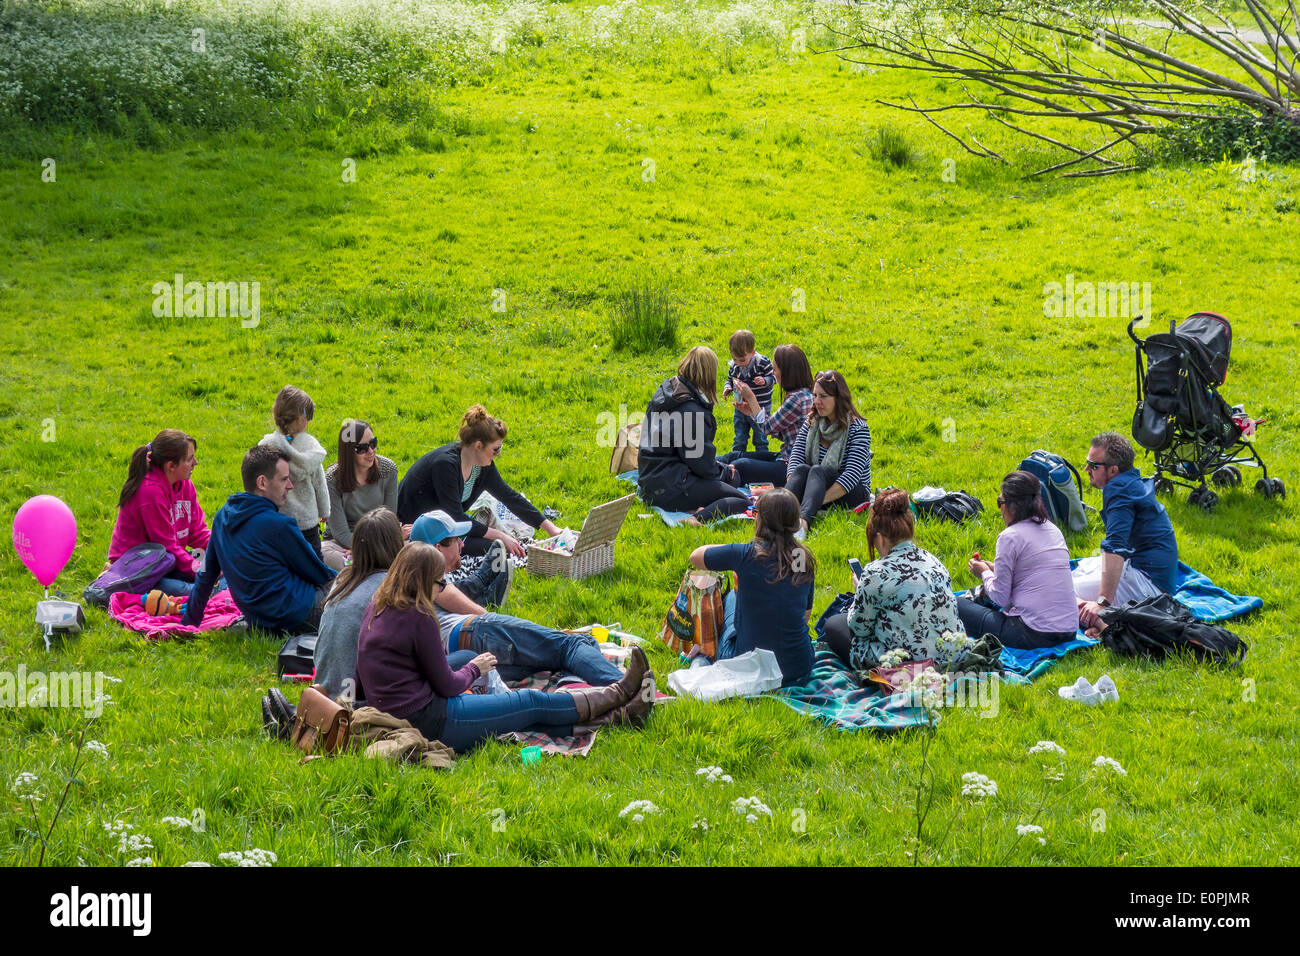 Family and Friends Picnic Picnicking in Meadow - Stock Image